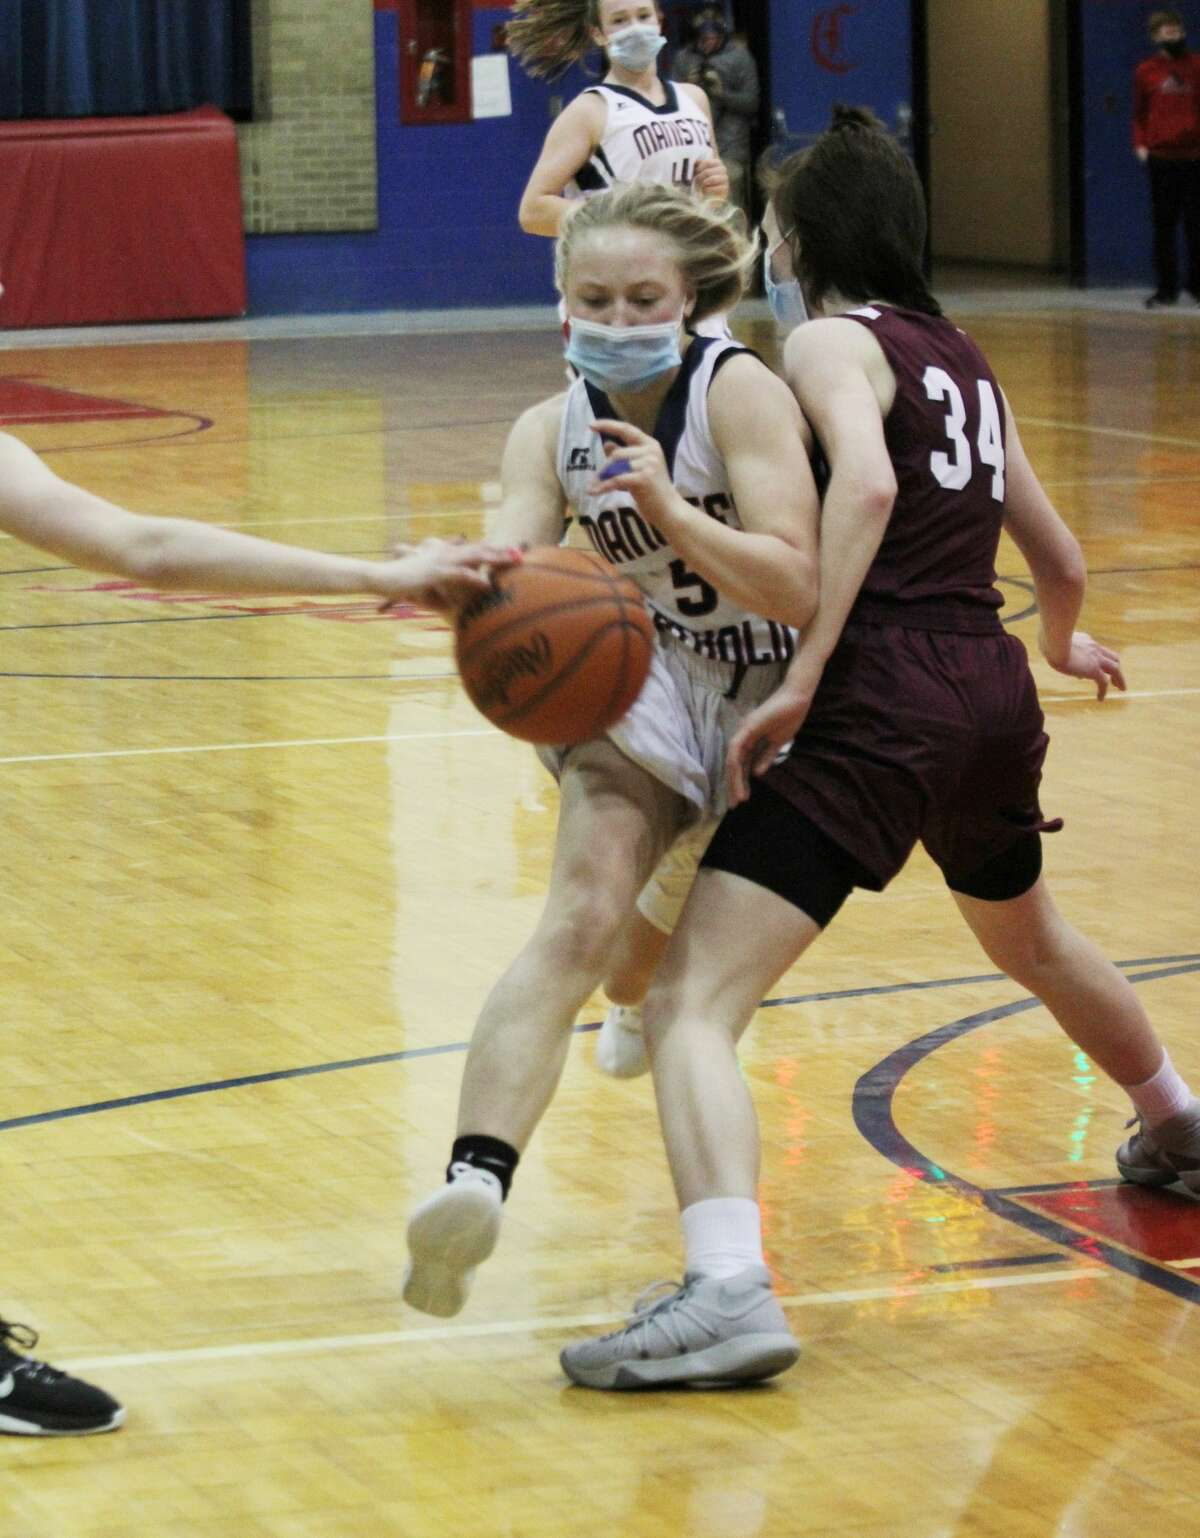 The Sabers went 4-4 in the West Michigan D League and 7-8 overall, including a Division 4 district quarterfinal win over Brethren before bowing out of the tournament with a semifinal loss to Mesick.